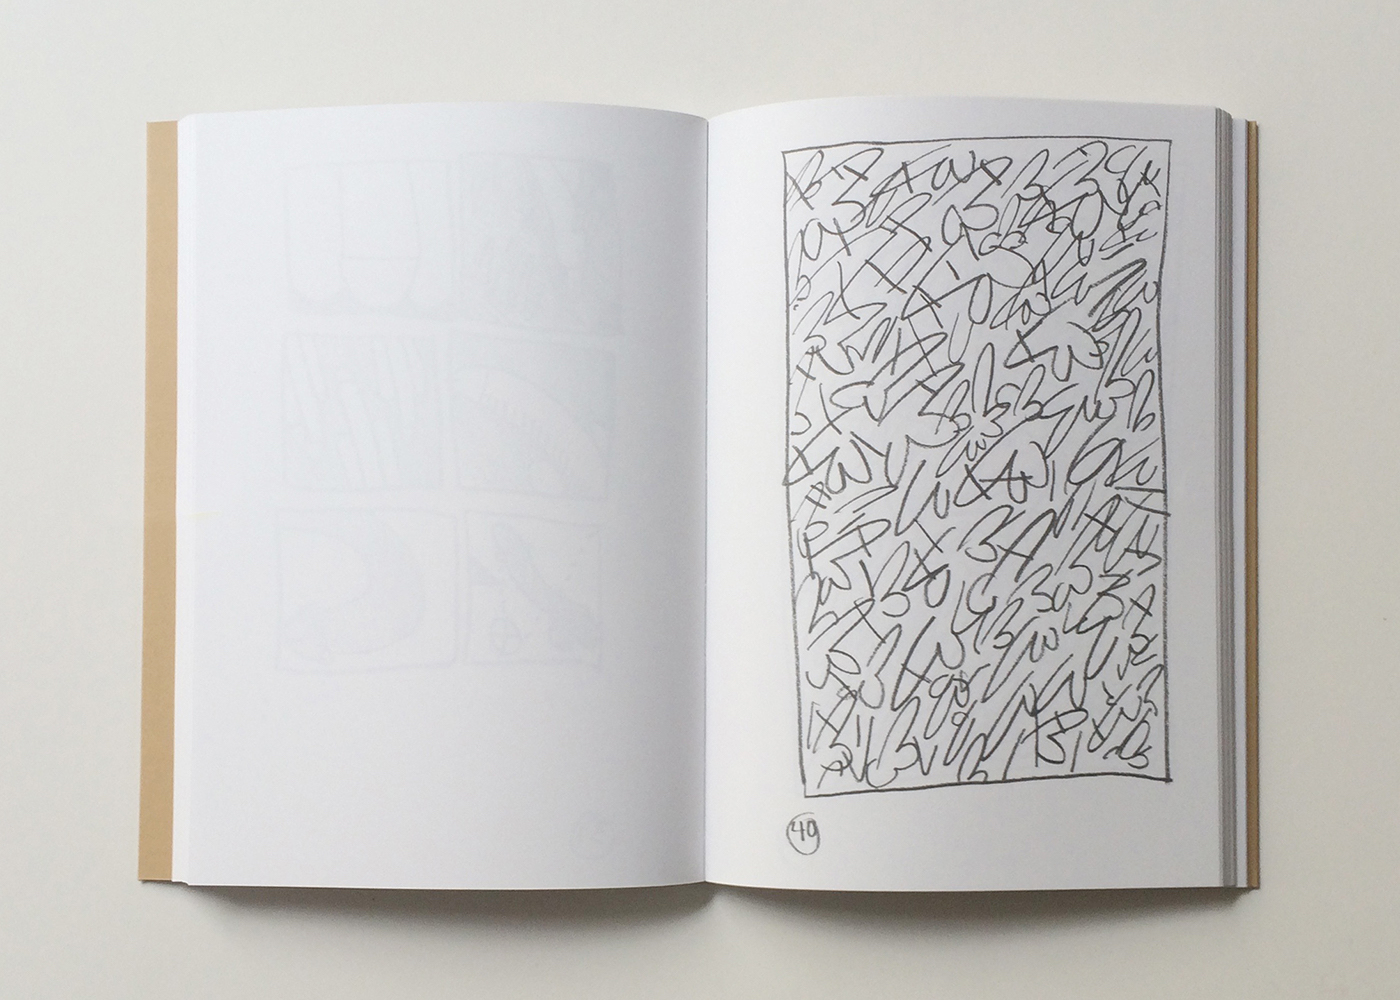 """Keith Haring, """"Madison & 52nd,"""" from 'Manhattan Penis Drawings for Ken Hicks' (1978)"""